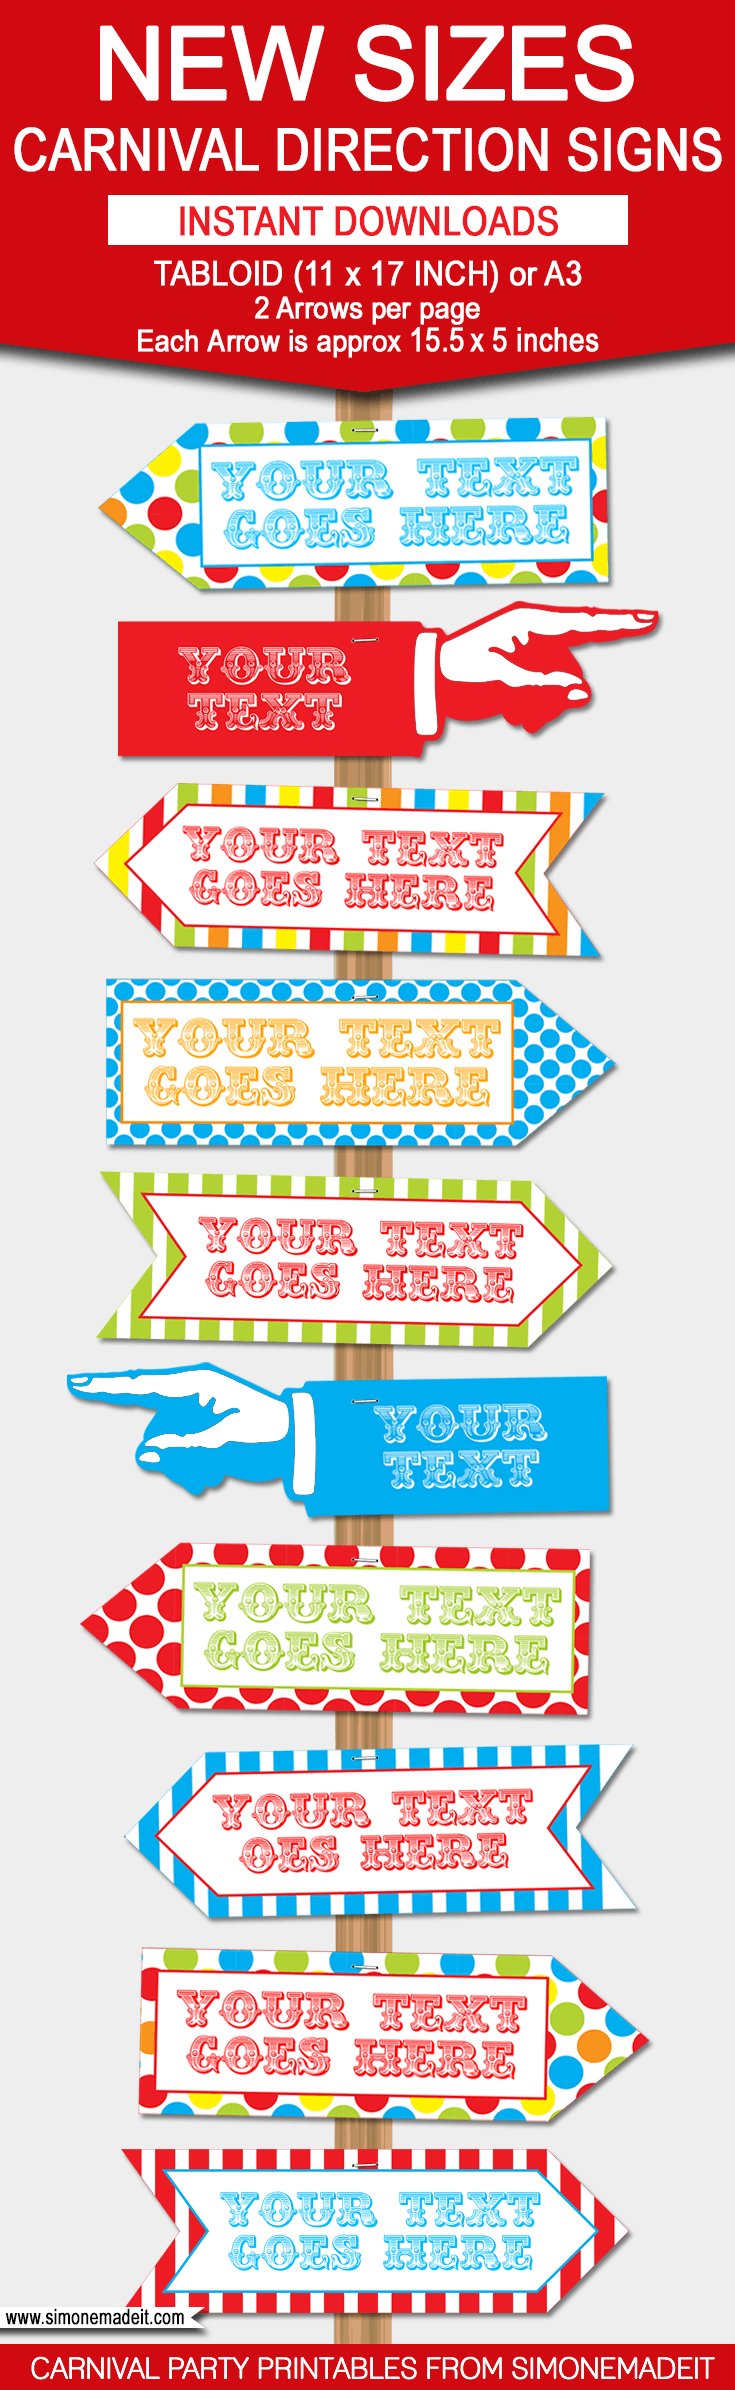 Carnival Directional Sign Templates – New Sizes!   Circus/carnival - Free Printable Carnival Decorations